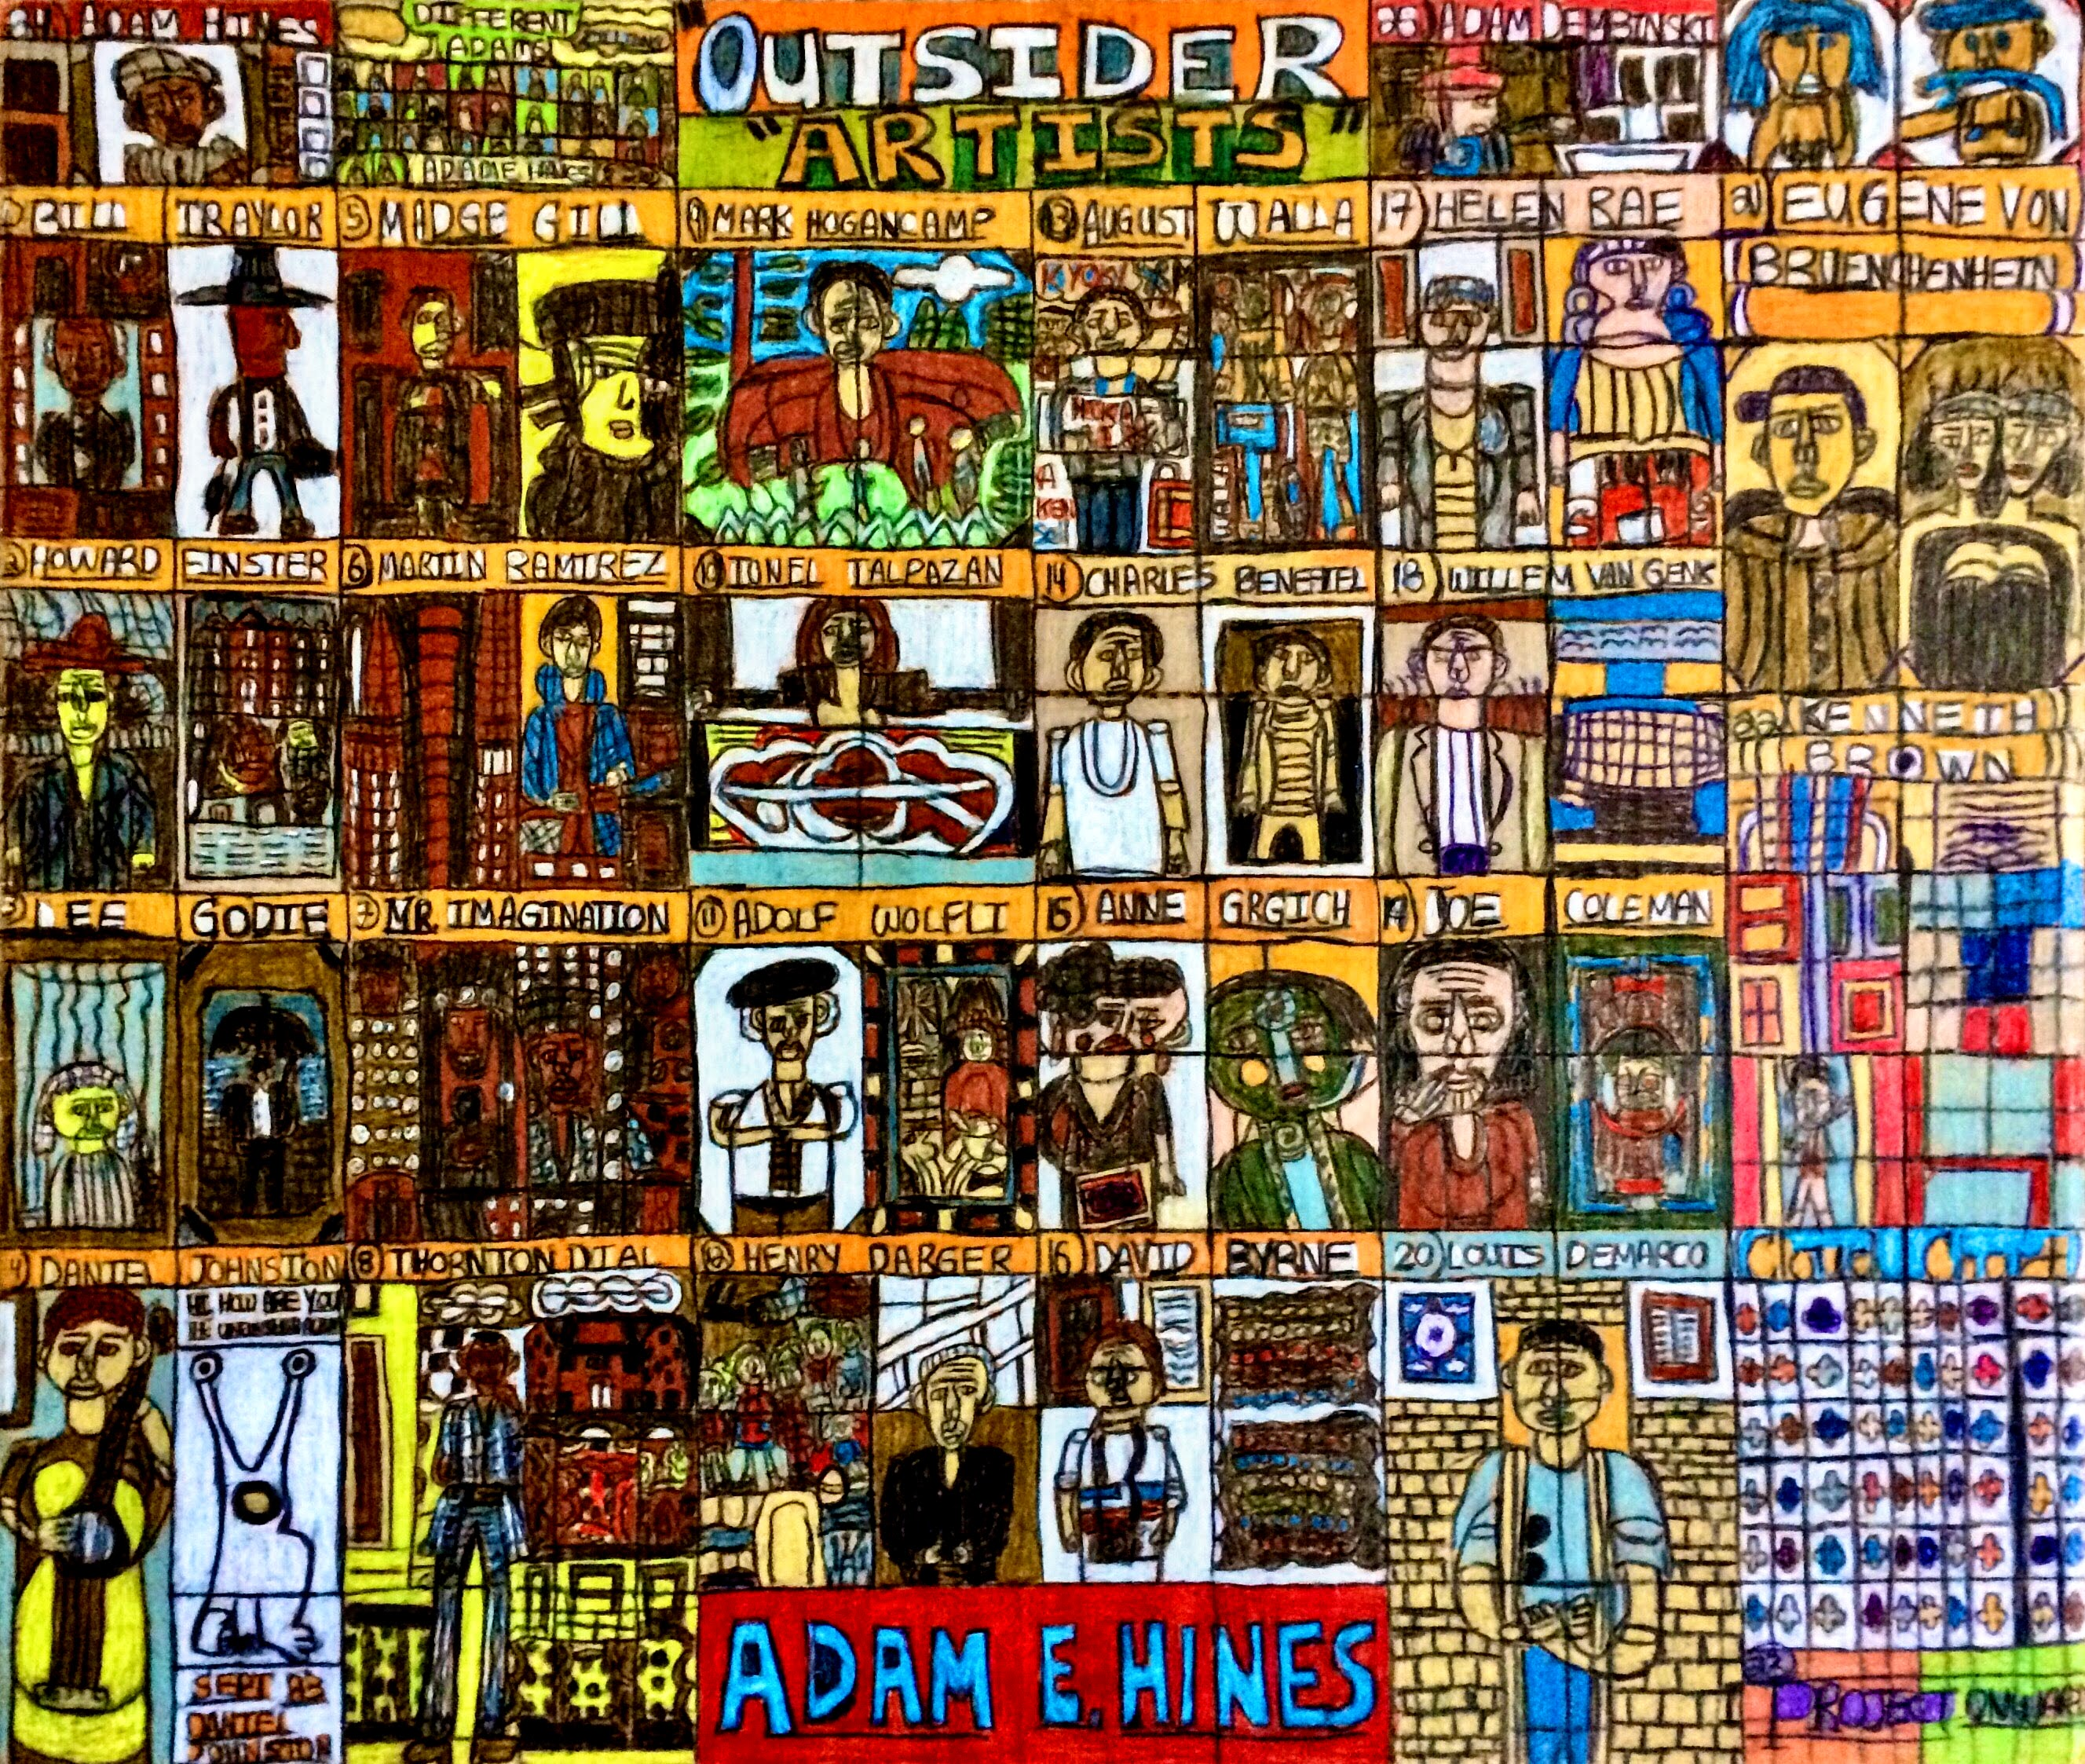 """Outsider Artists"" by Adam Hines"